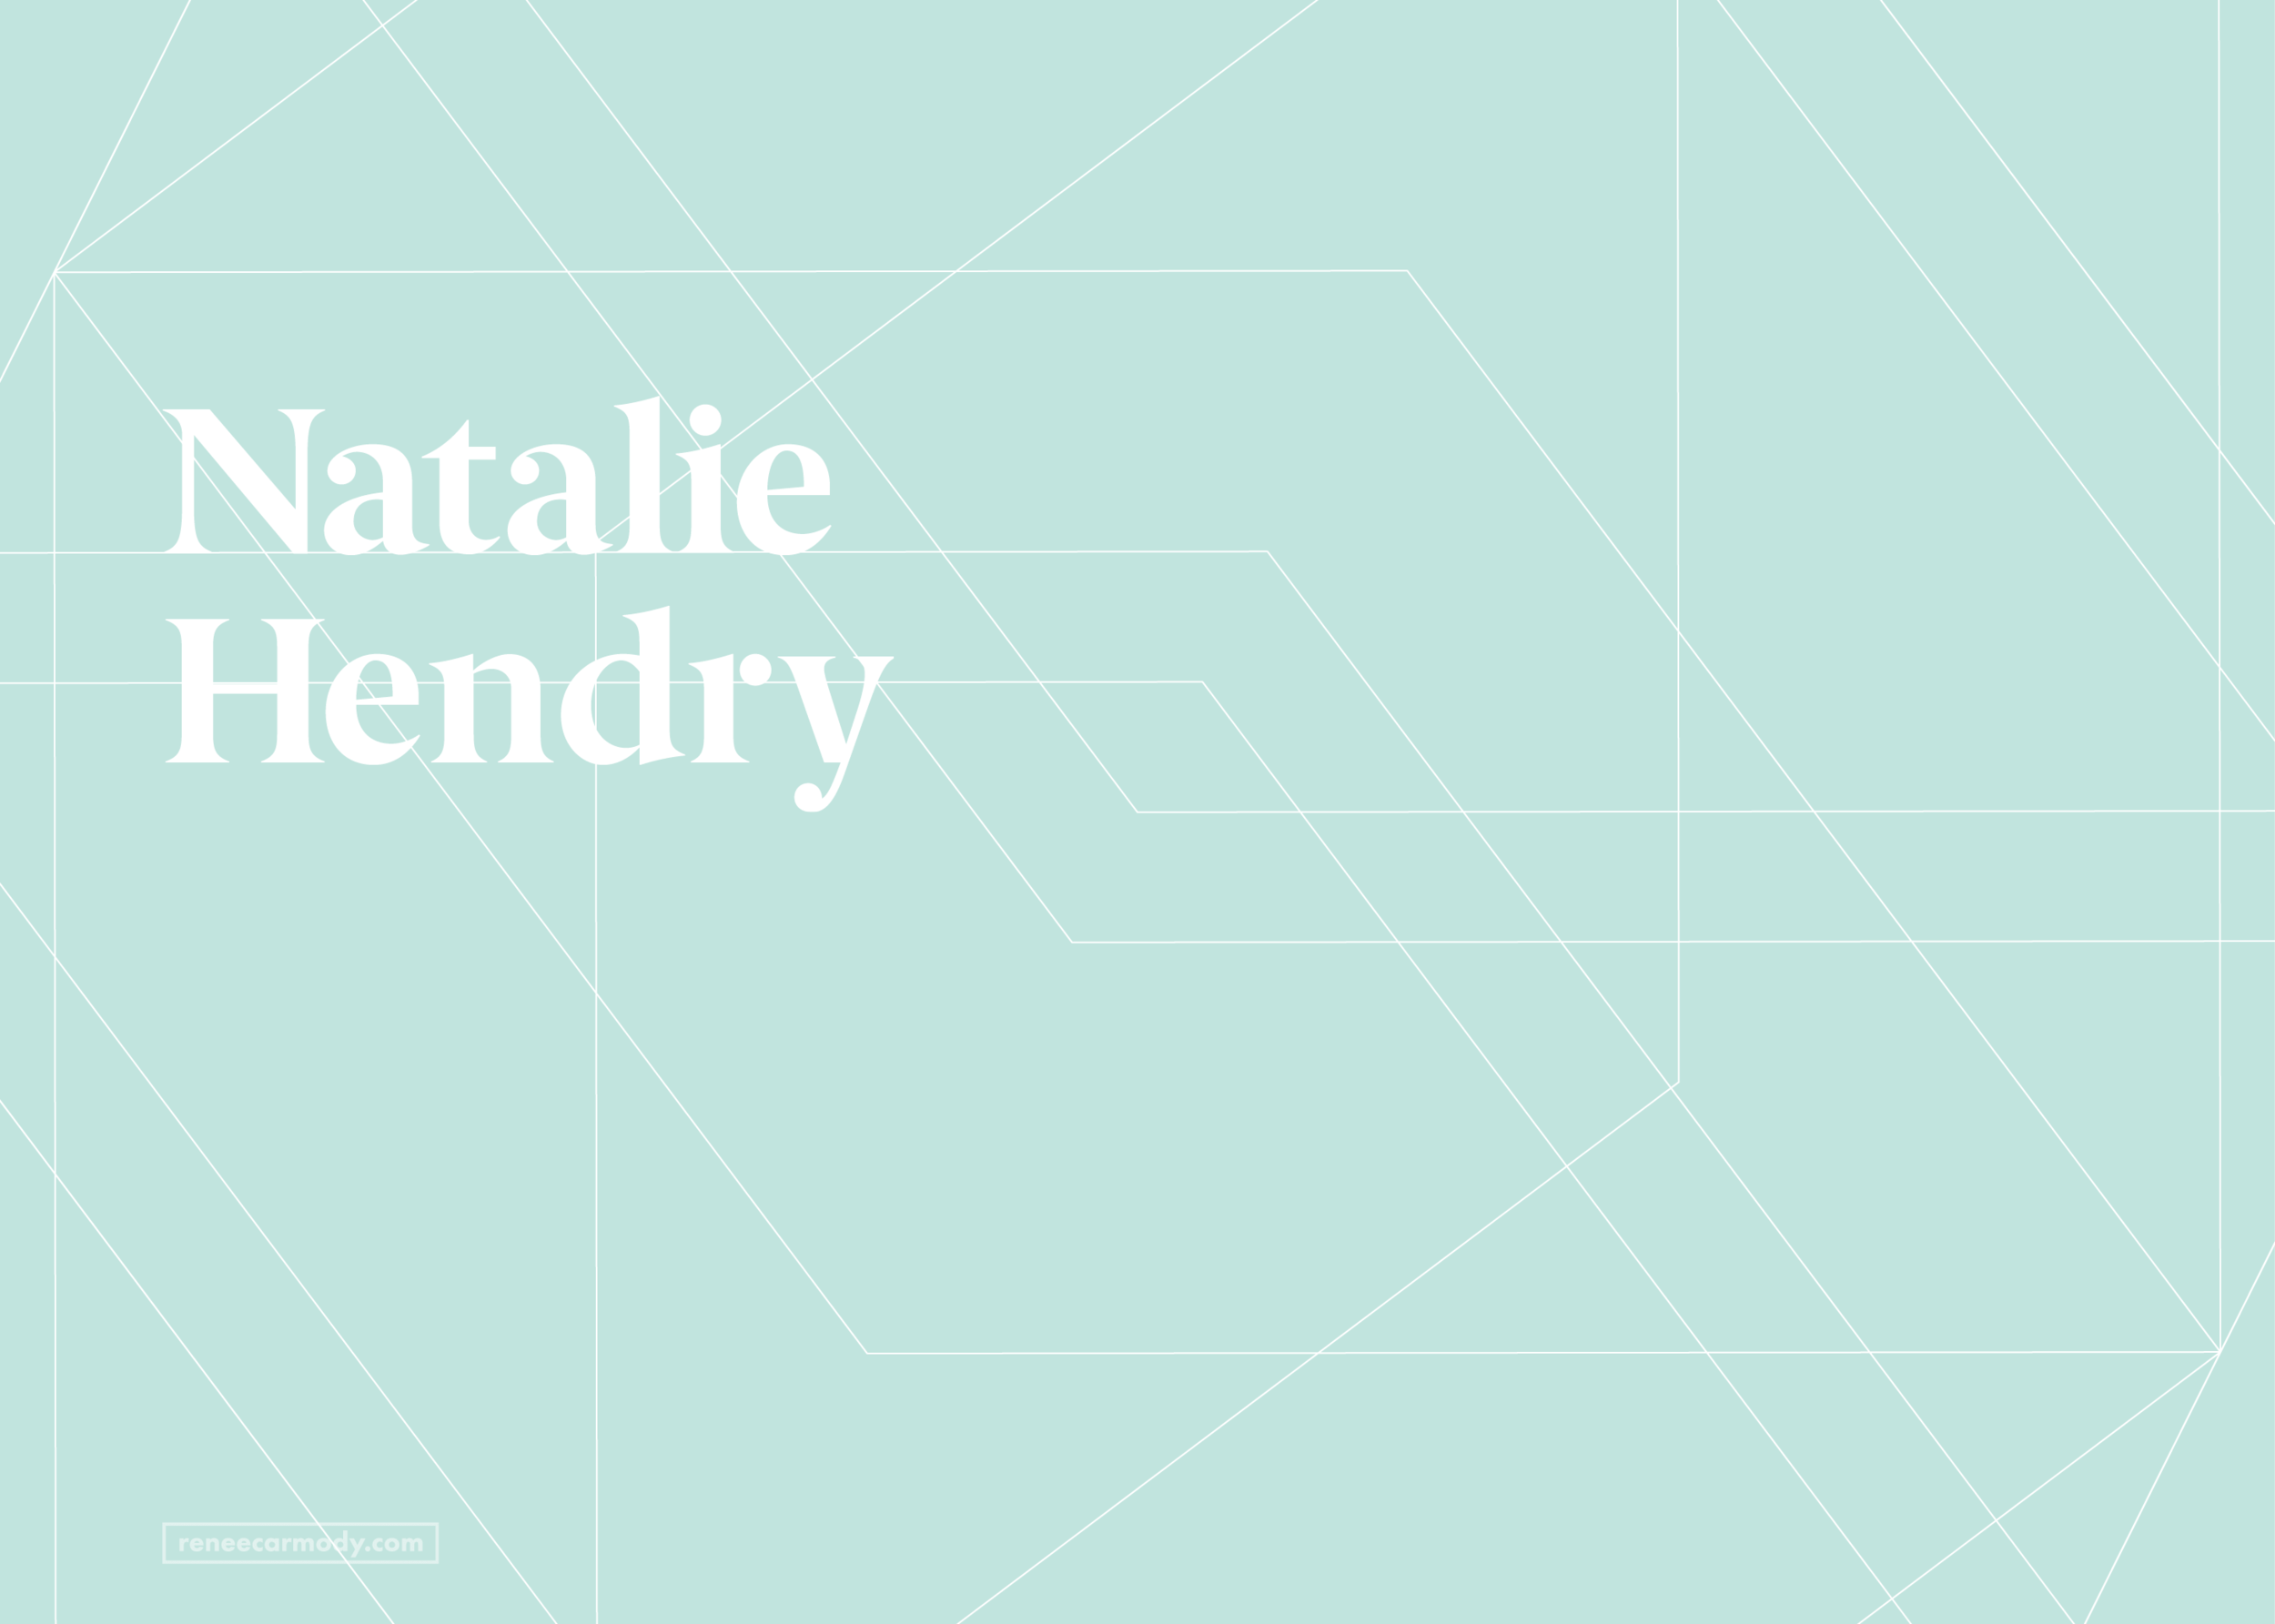 Logo and brand design for Natalie Hendry by Renée Carmody Design.